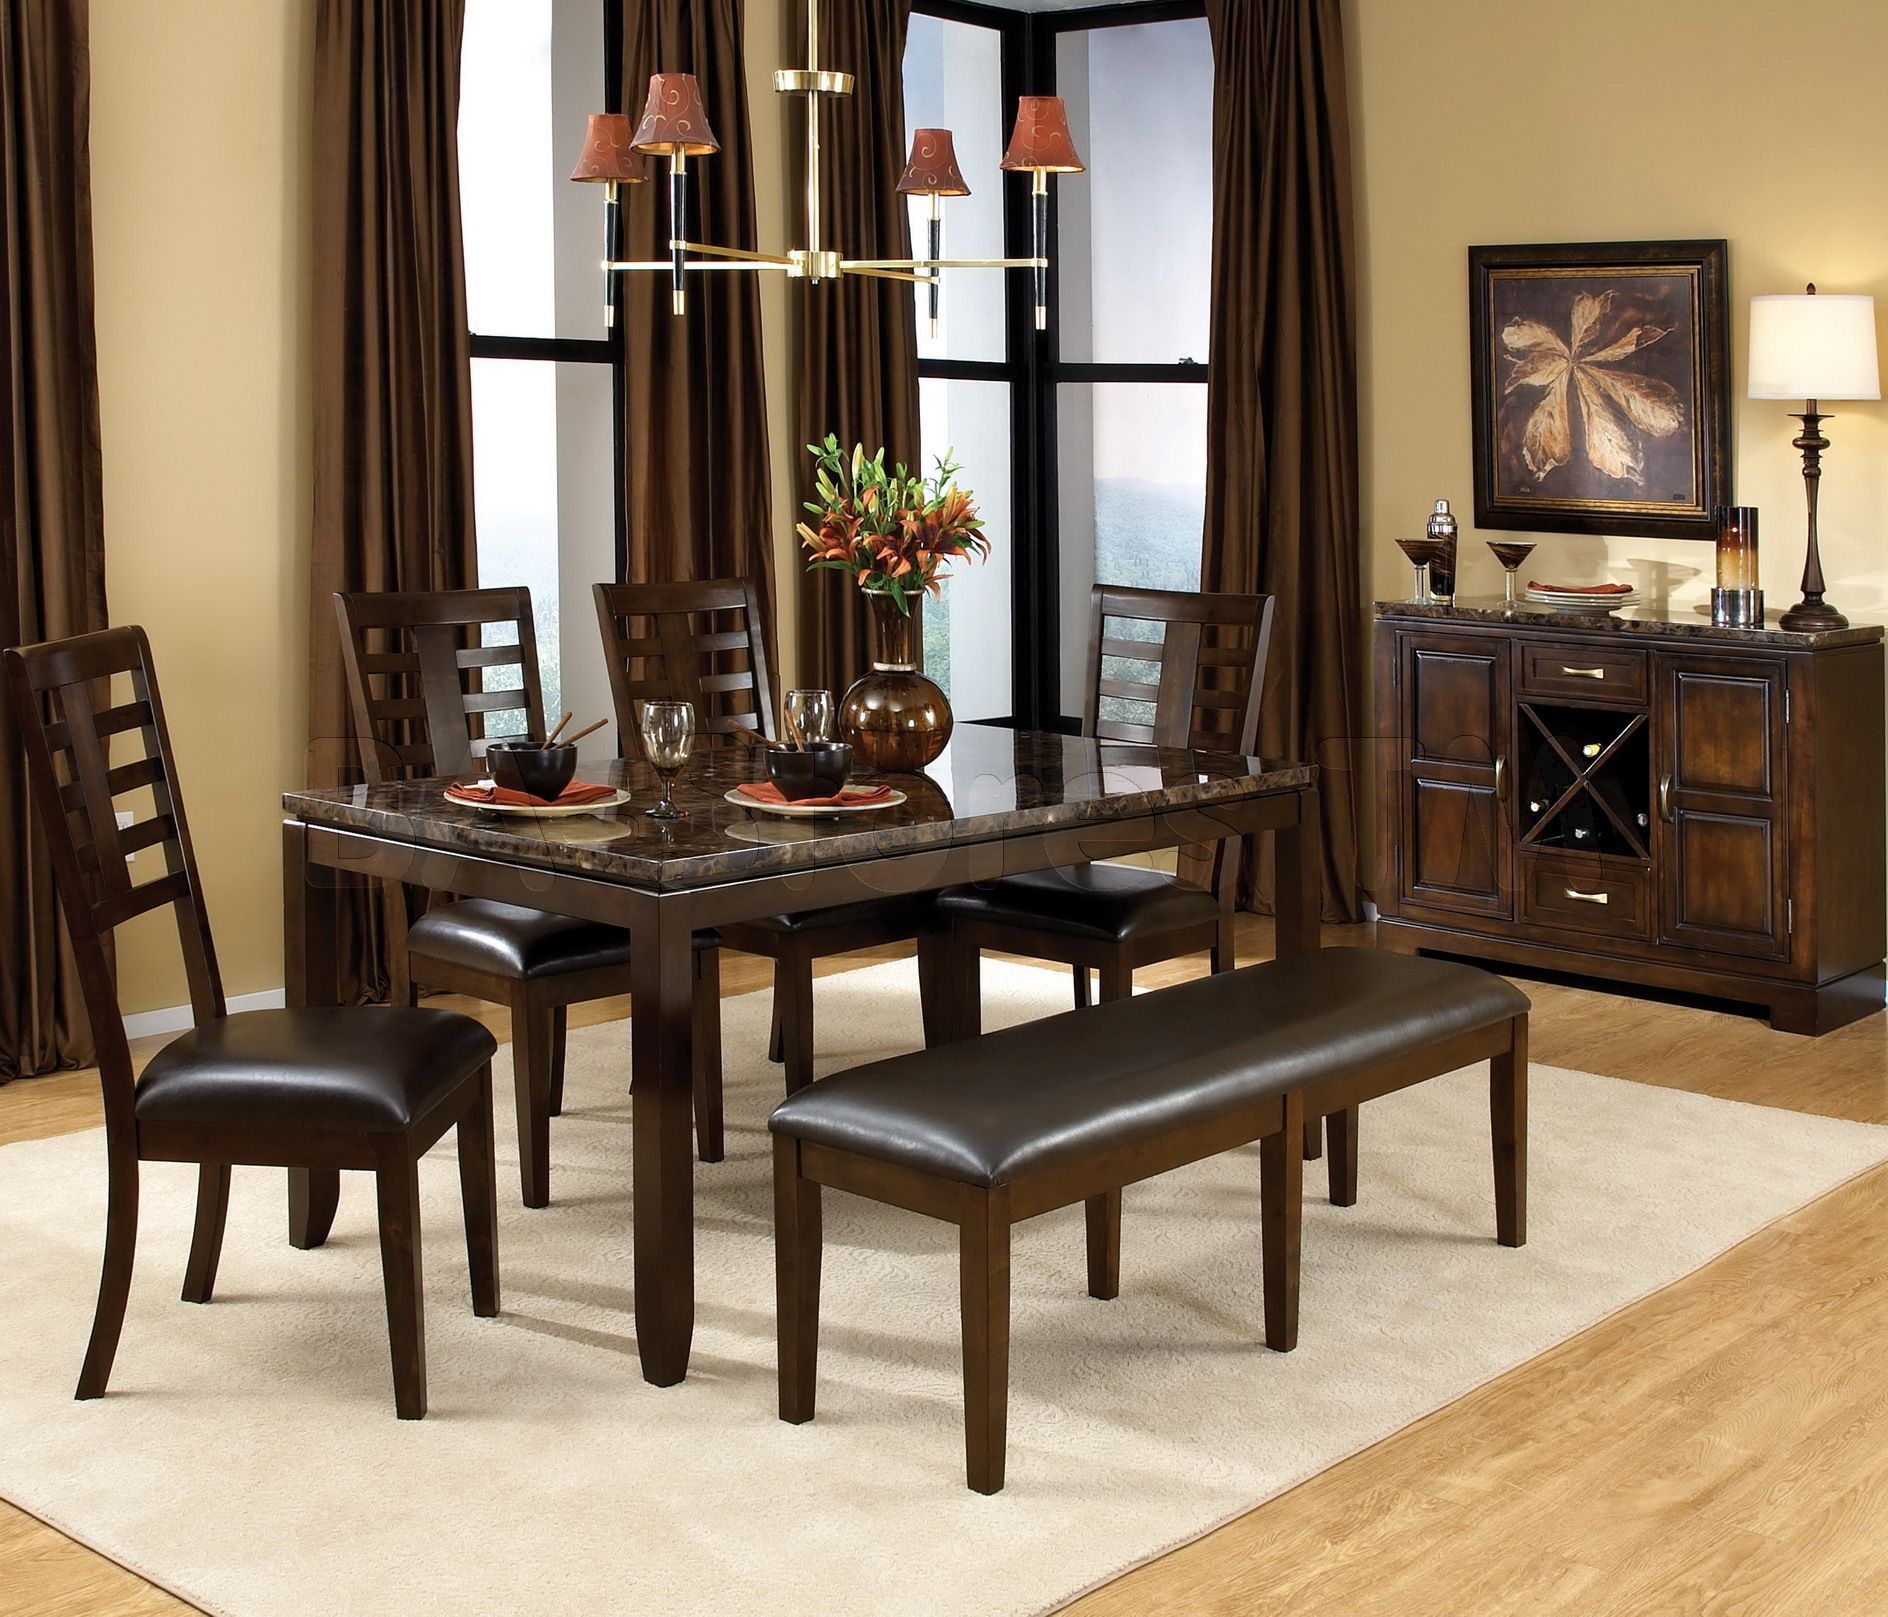 Ordinaire Marvelous Classic Ikea Dining Sets With Brown Color And Single Bench On  White Dining Rugs Over